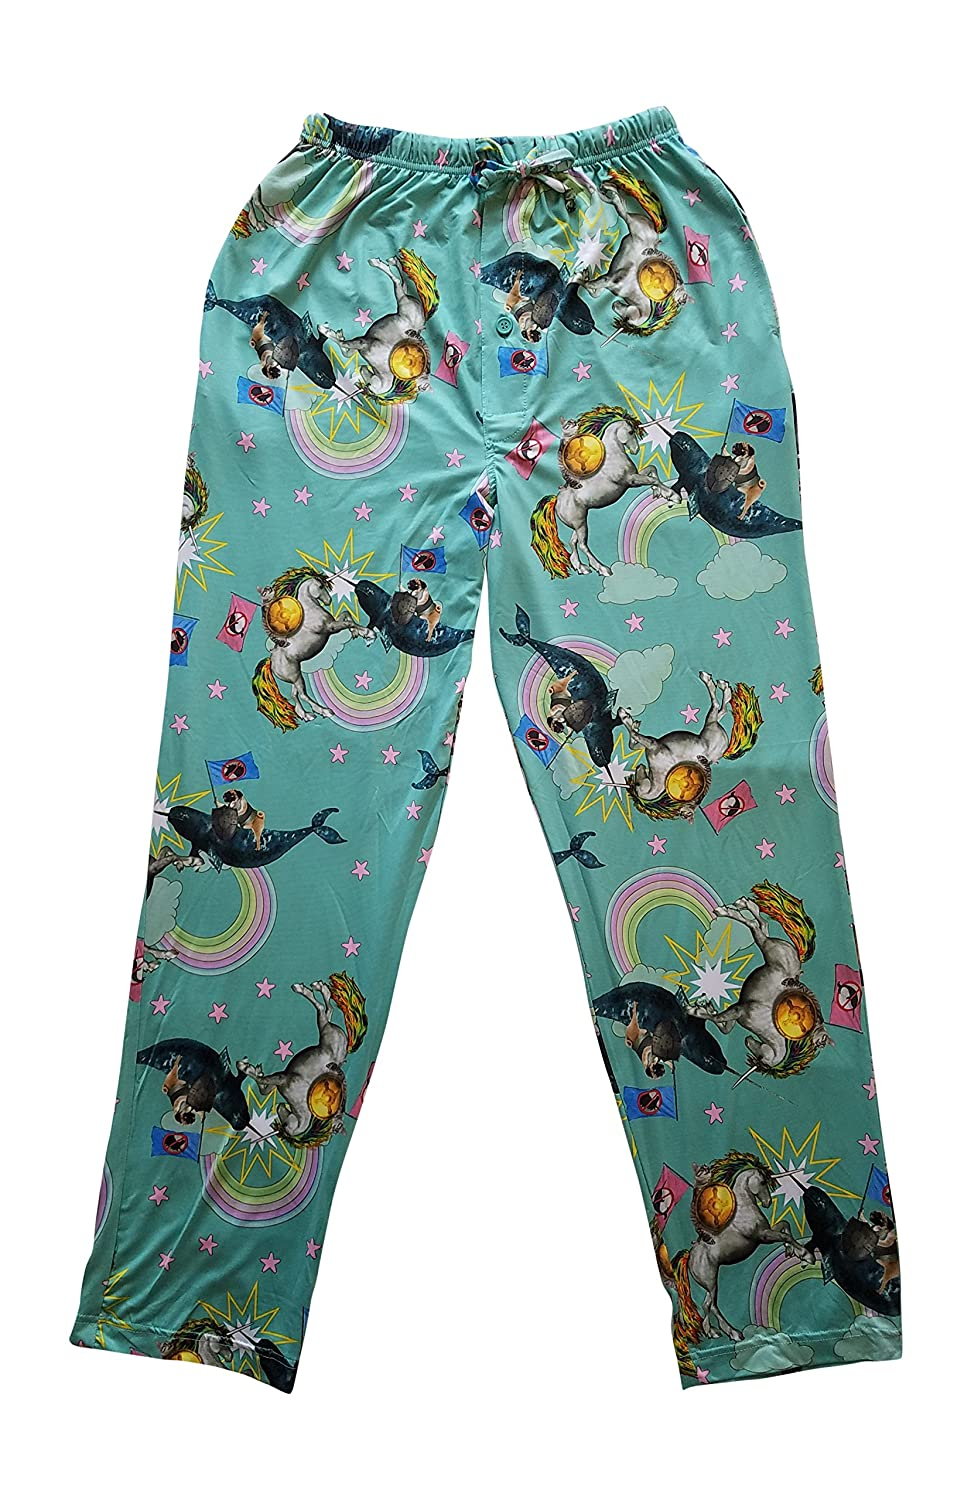 Top Drawer Men's Sleep Lounge Pants Cat Riding Unicorn BATTLING Pug Riding Narwhal Under a Rainbow